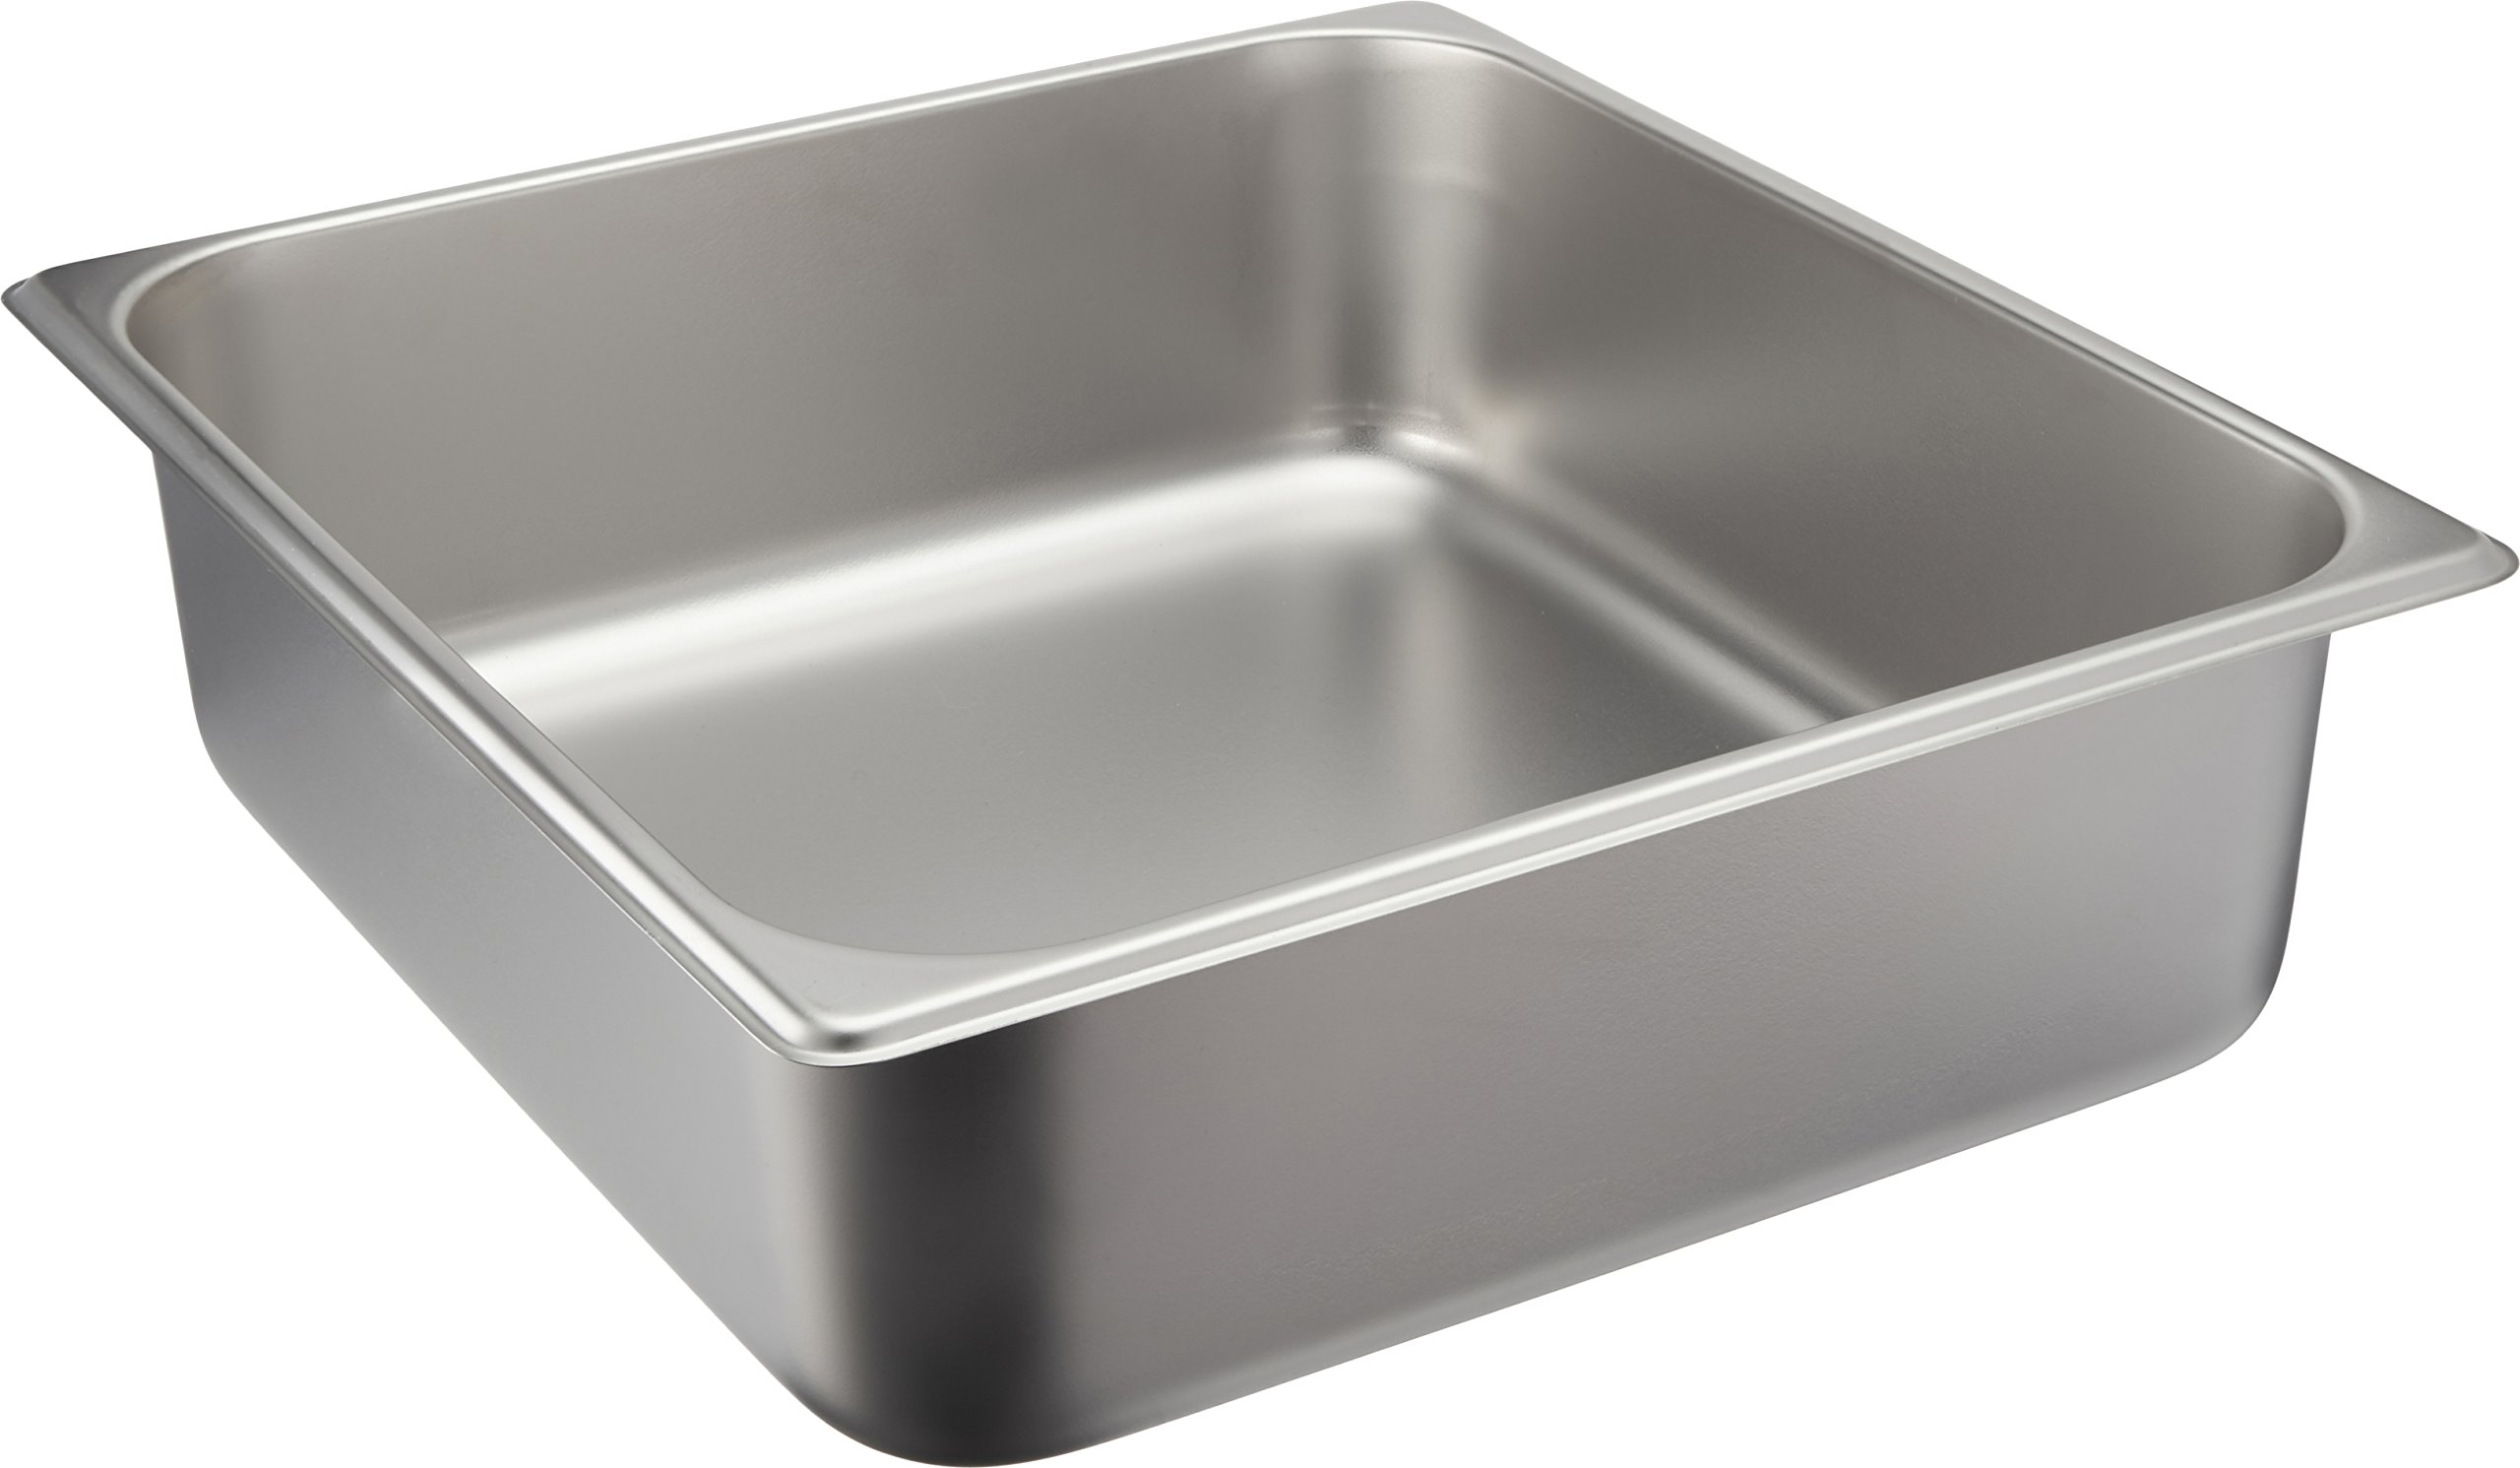 Winco SPTT4 2/3 Size Pan, 4-Inch by Winco